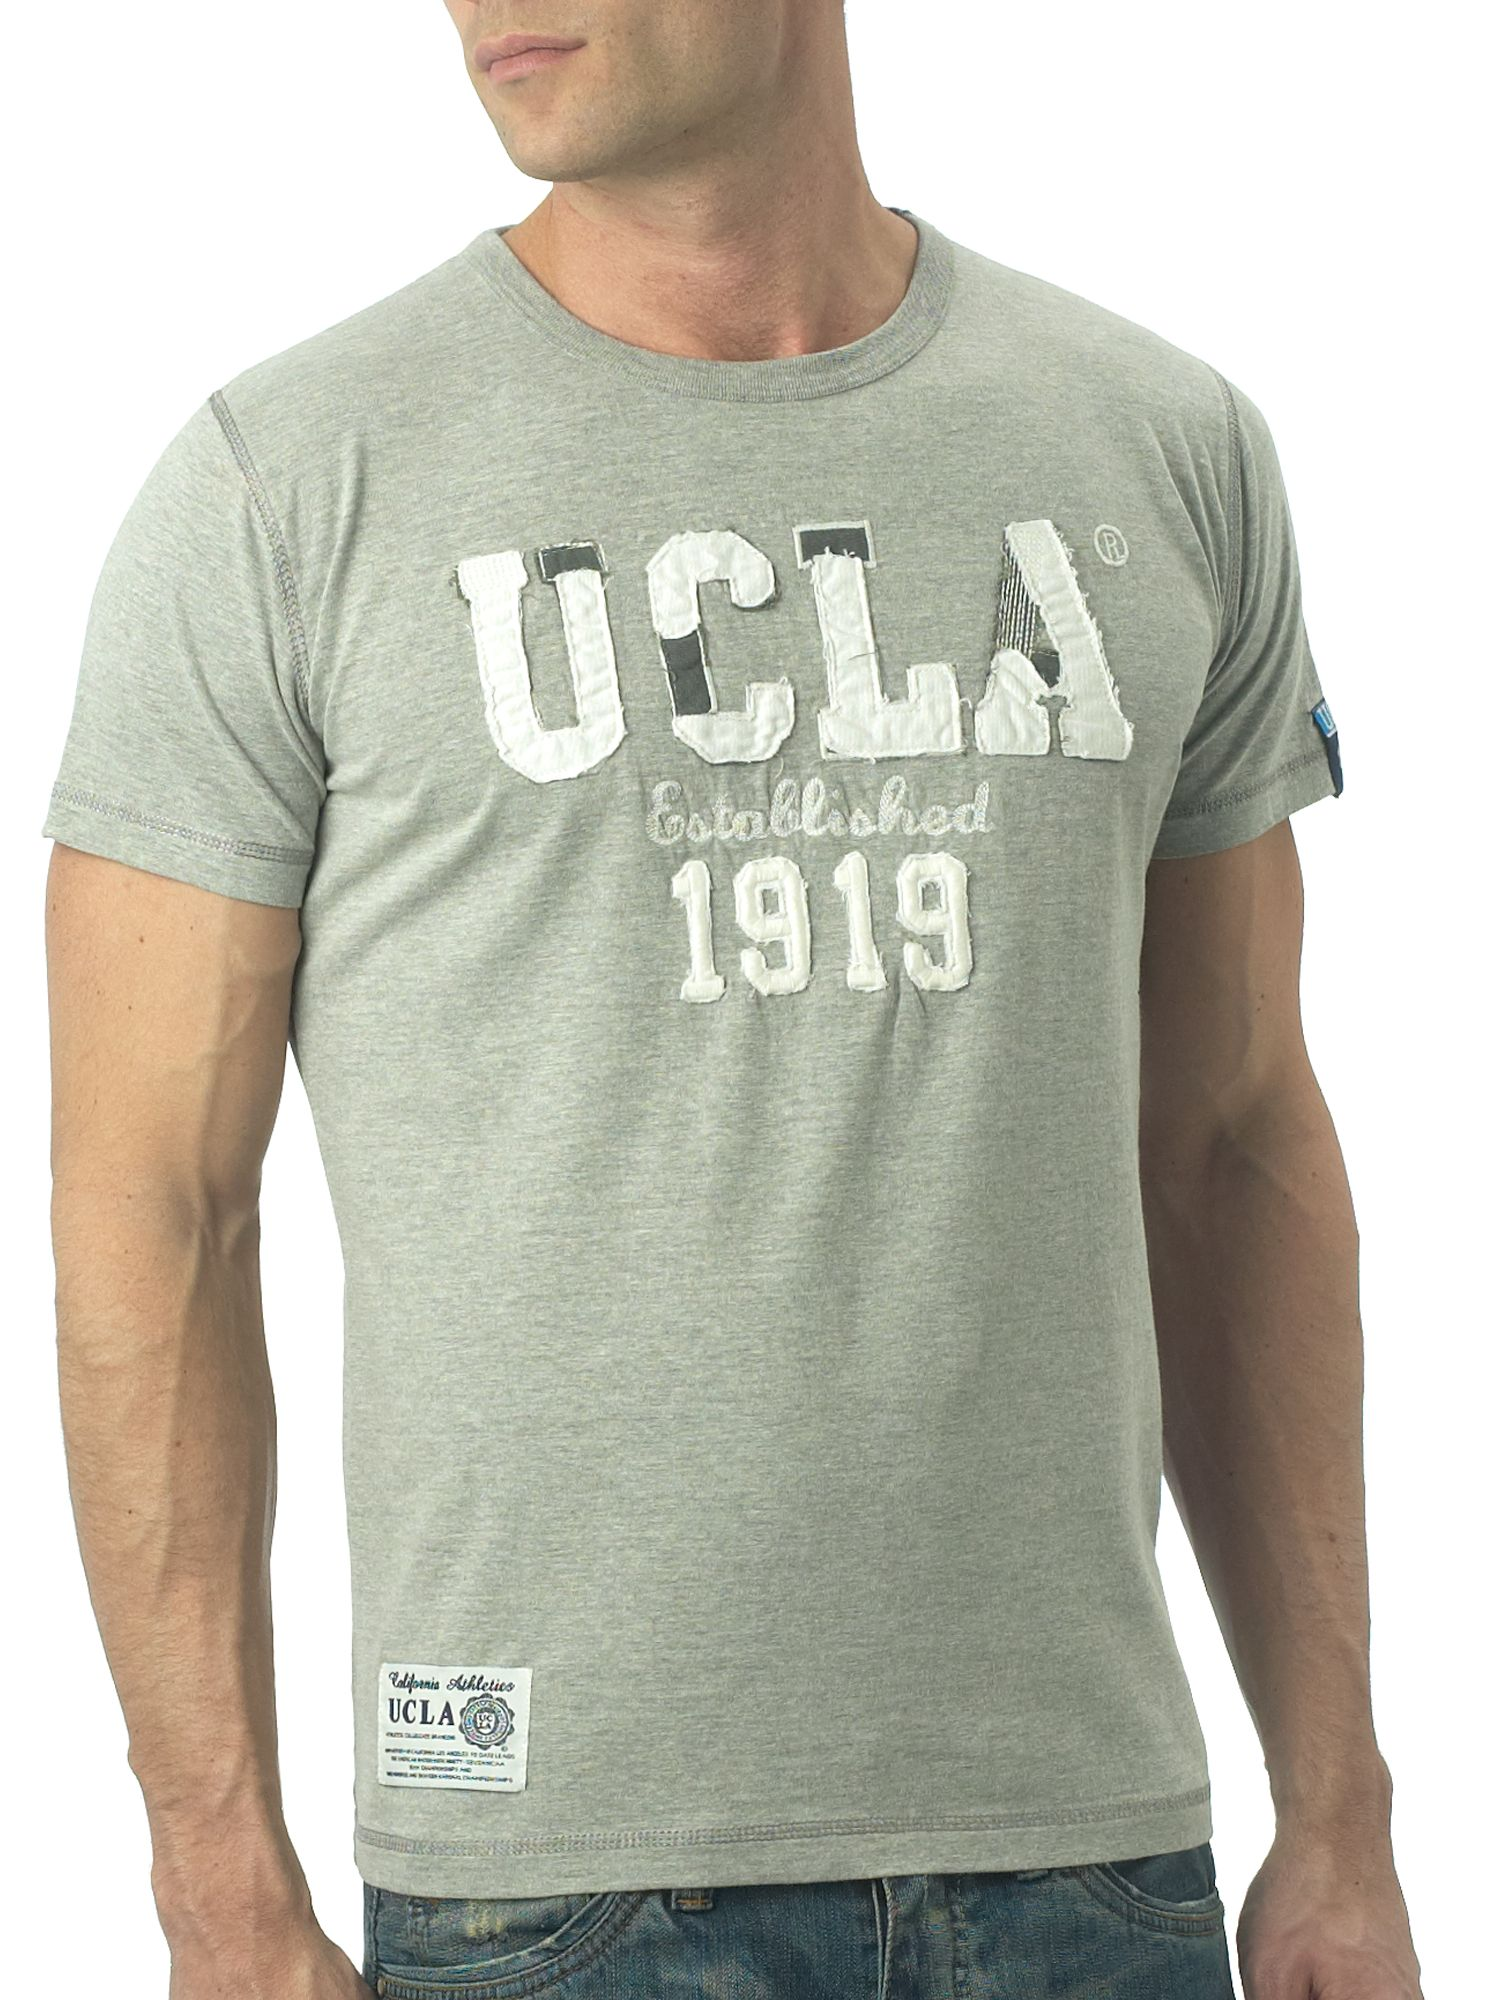 UCLA Brand application T-shirt product image